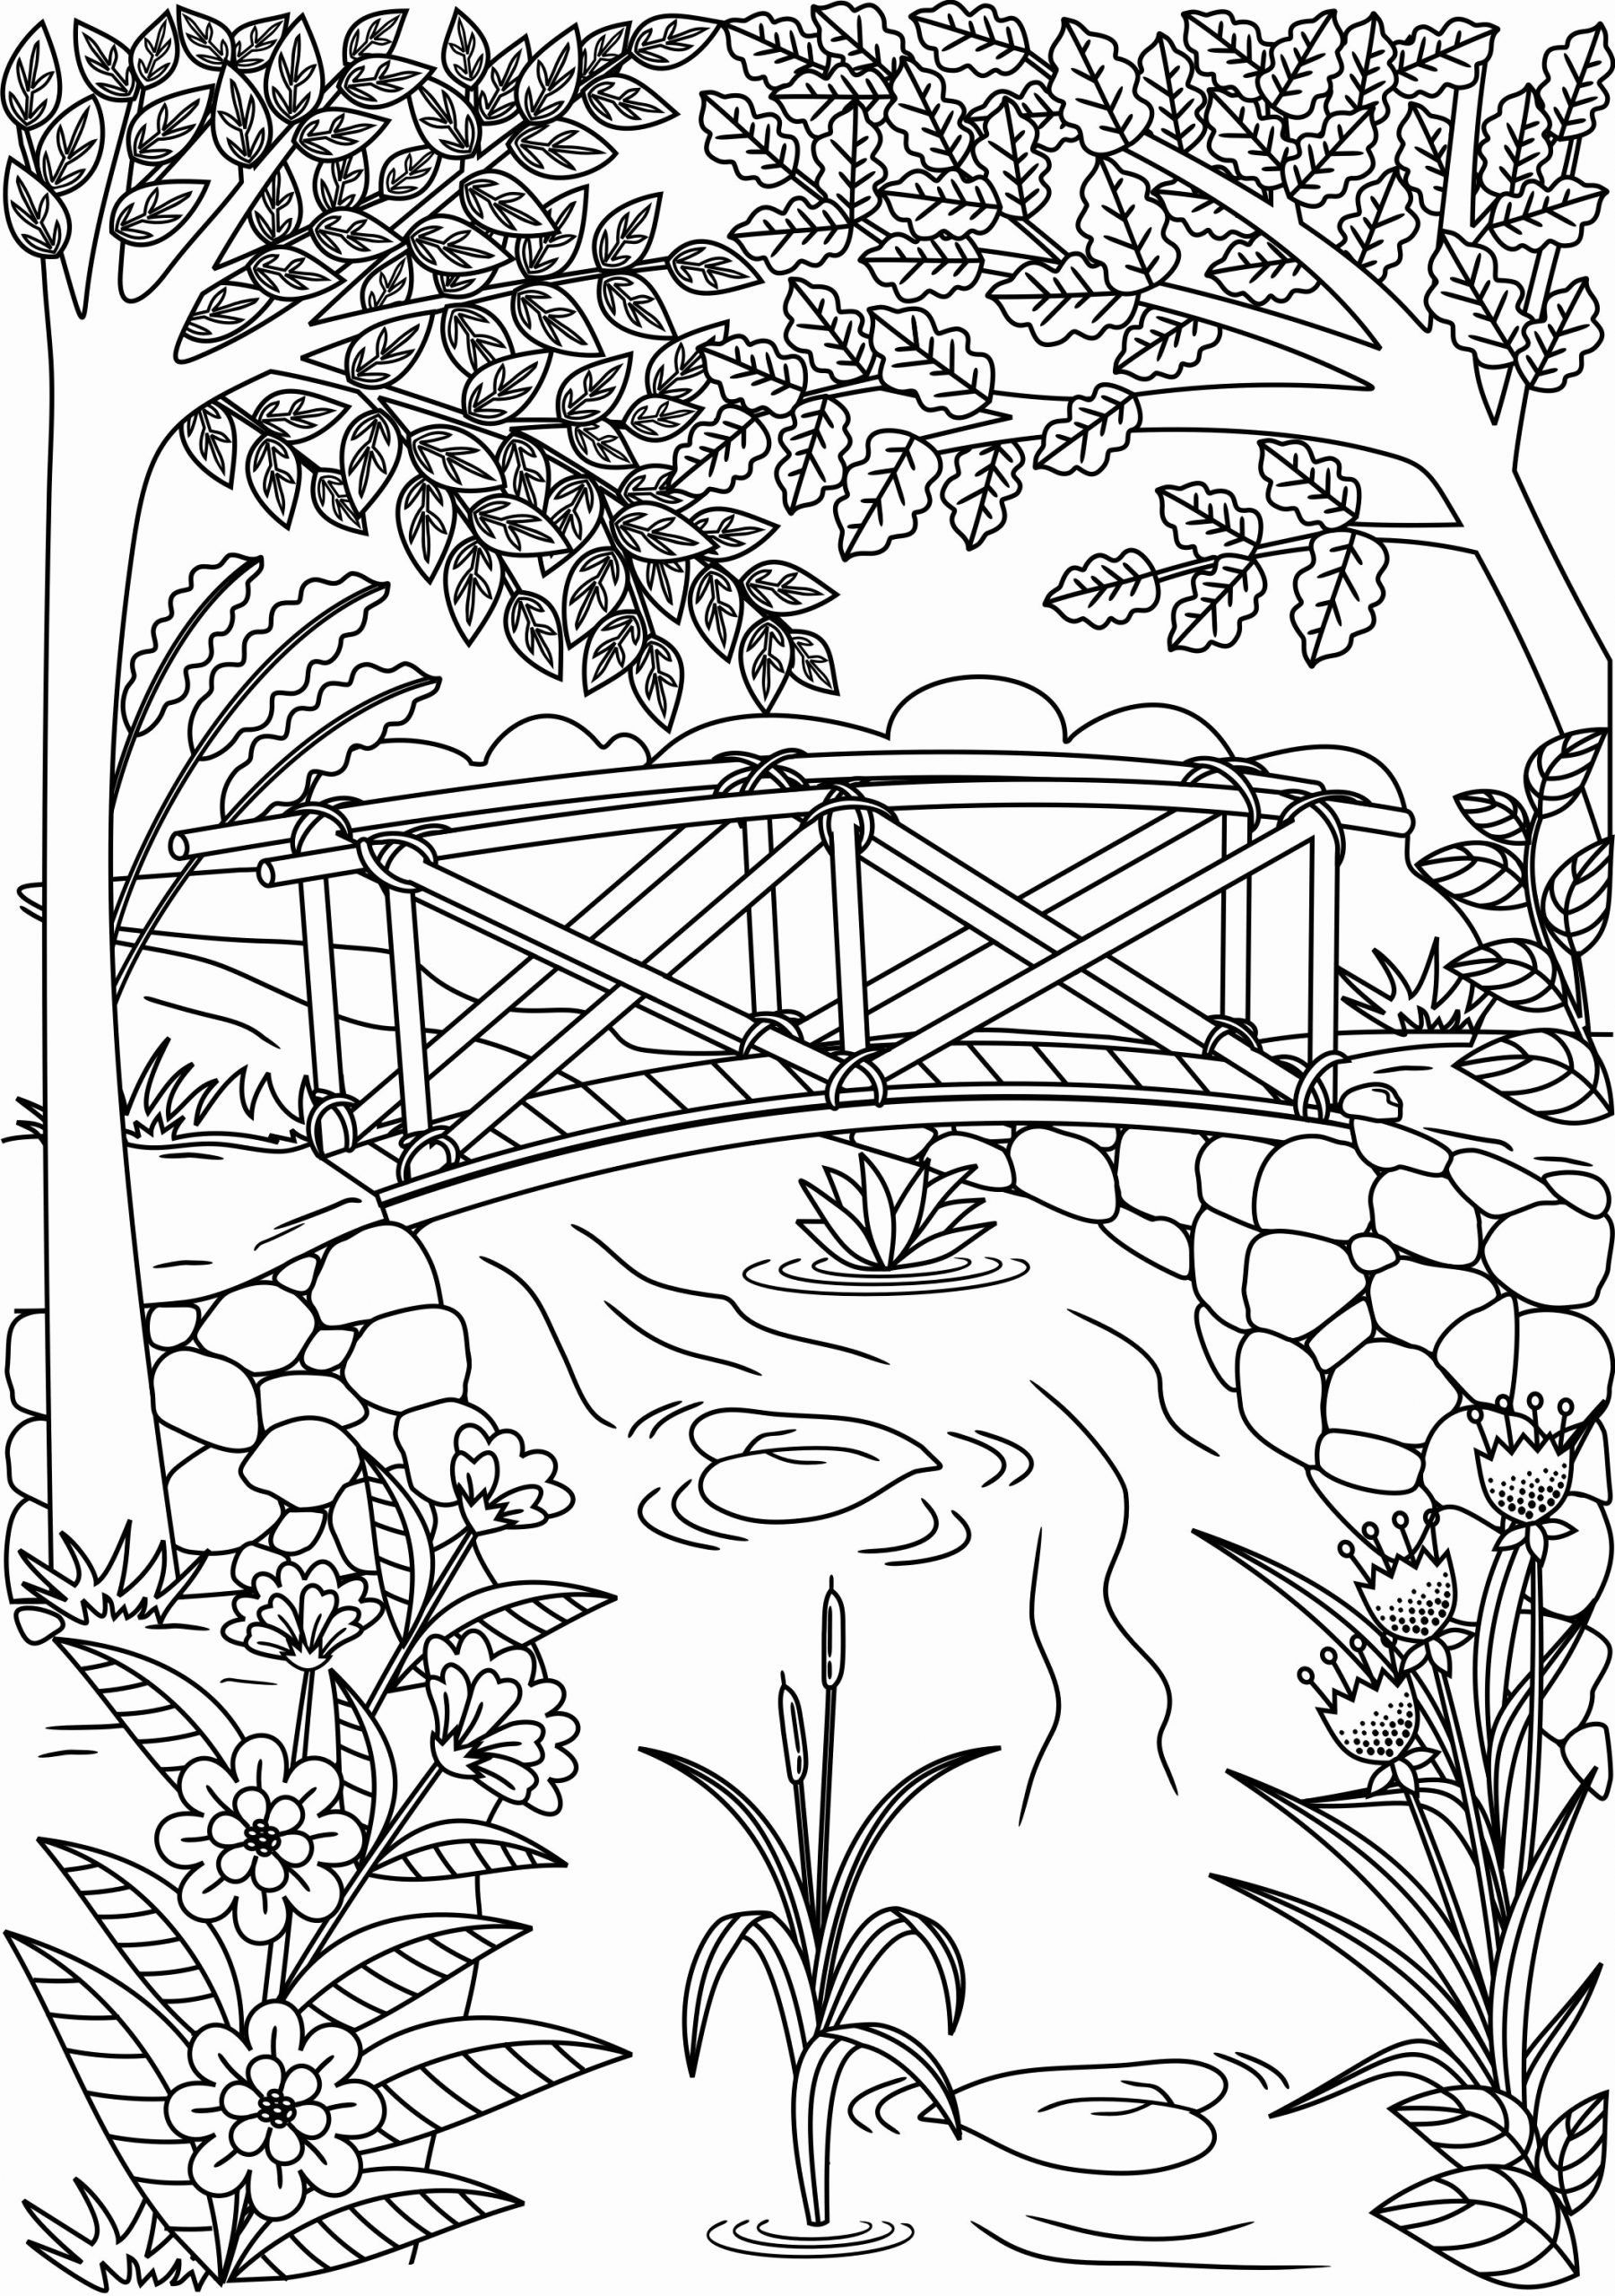 coloring pictures nature printable nature coloring pages for kids coloring pictures nature 1 1